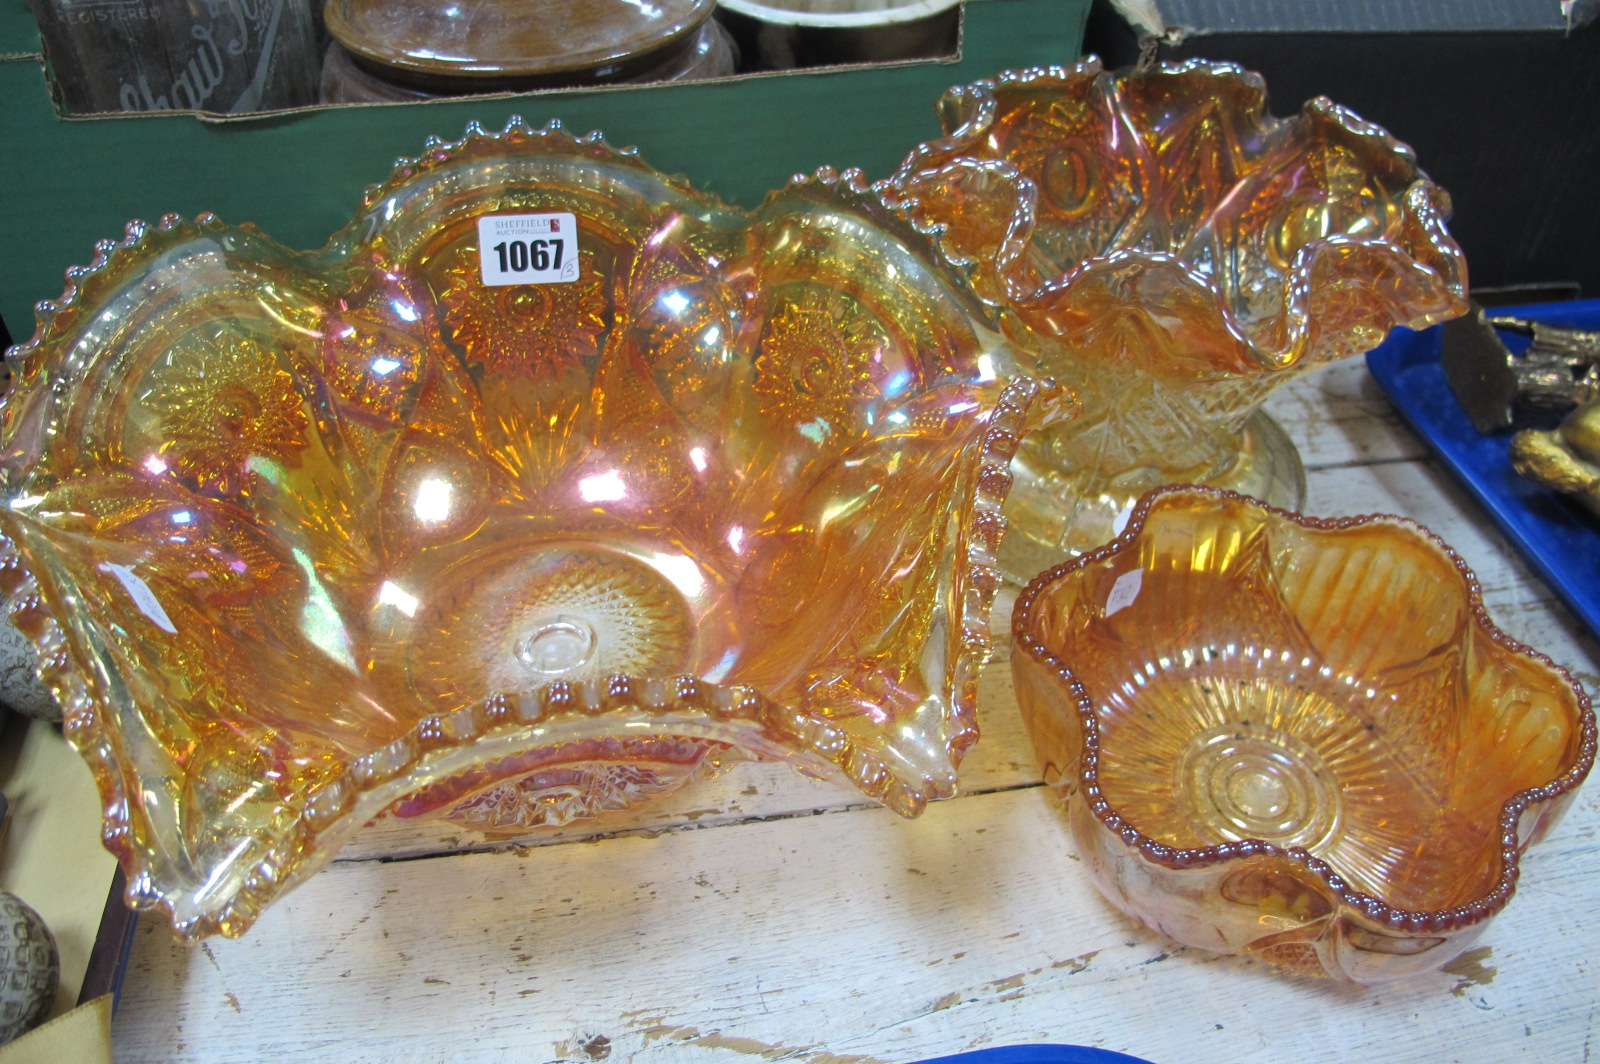 Carnival Glass, bowl with a wavy rim, together with two other Carnival glass bowls with wavy rims.